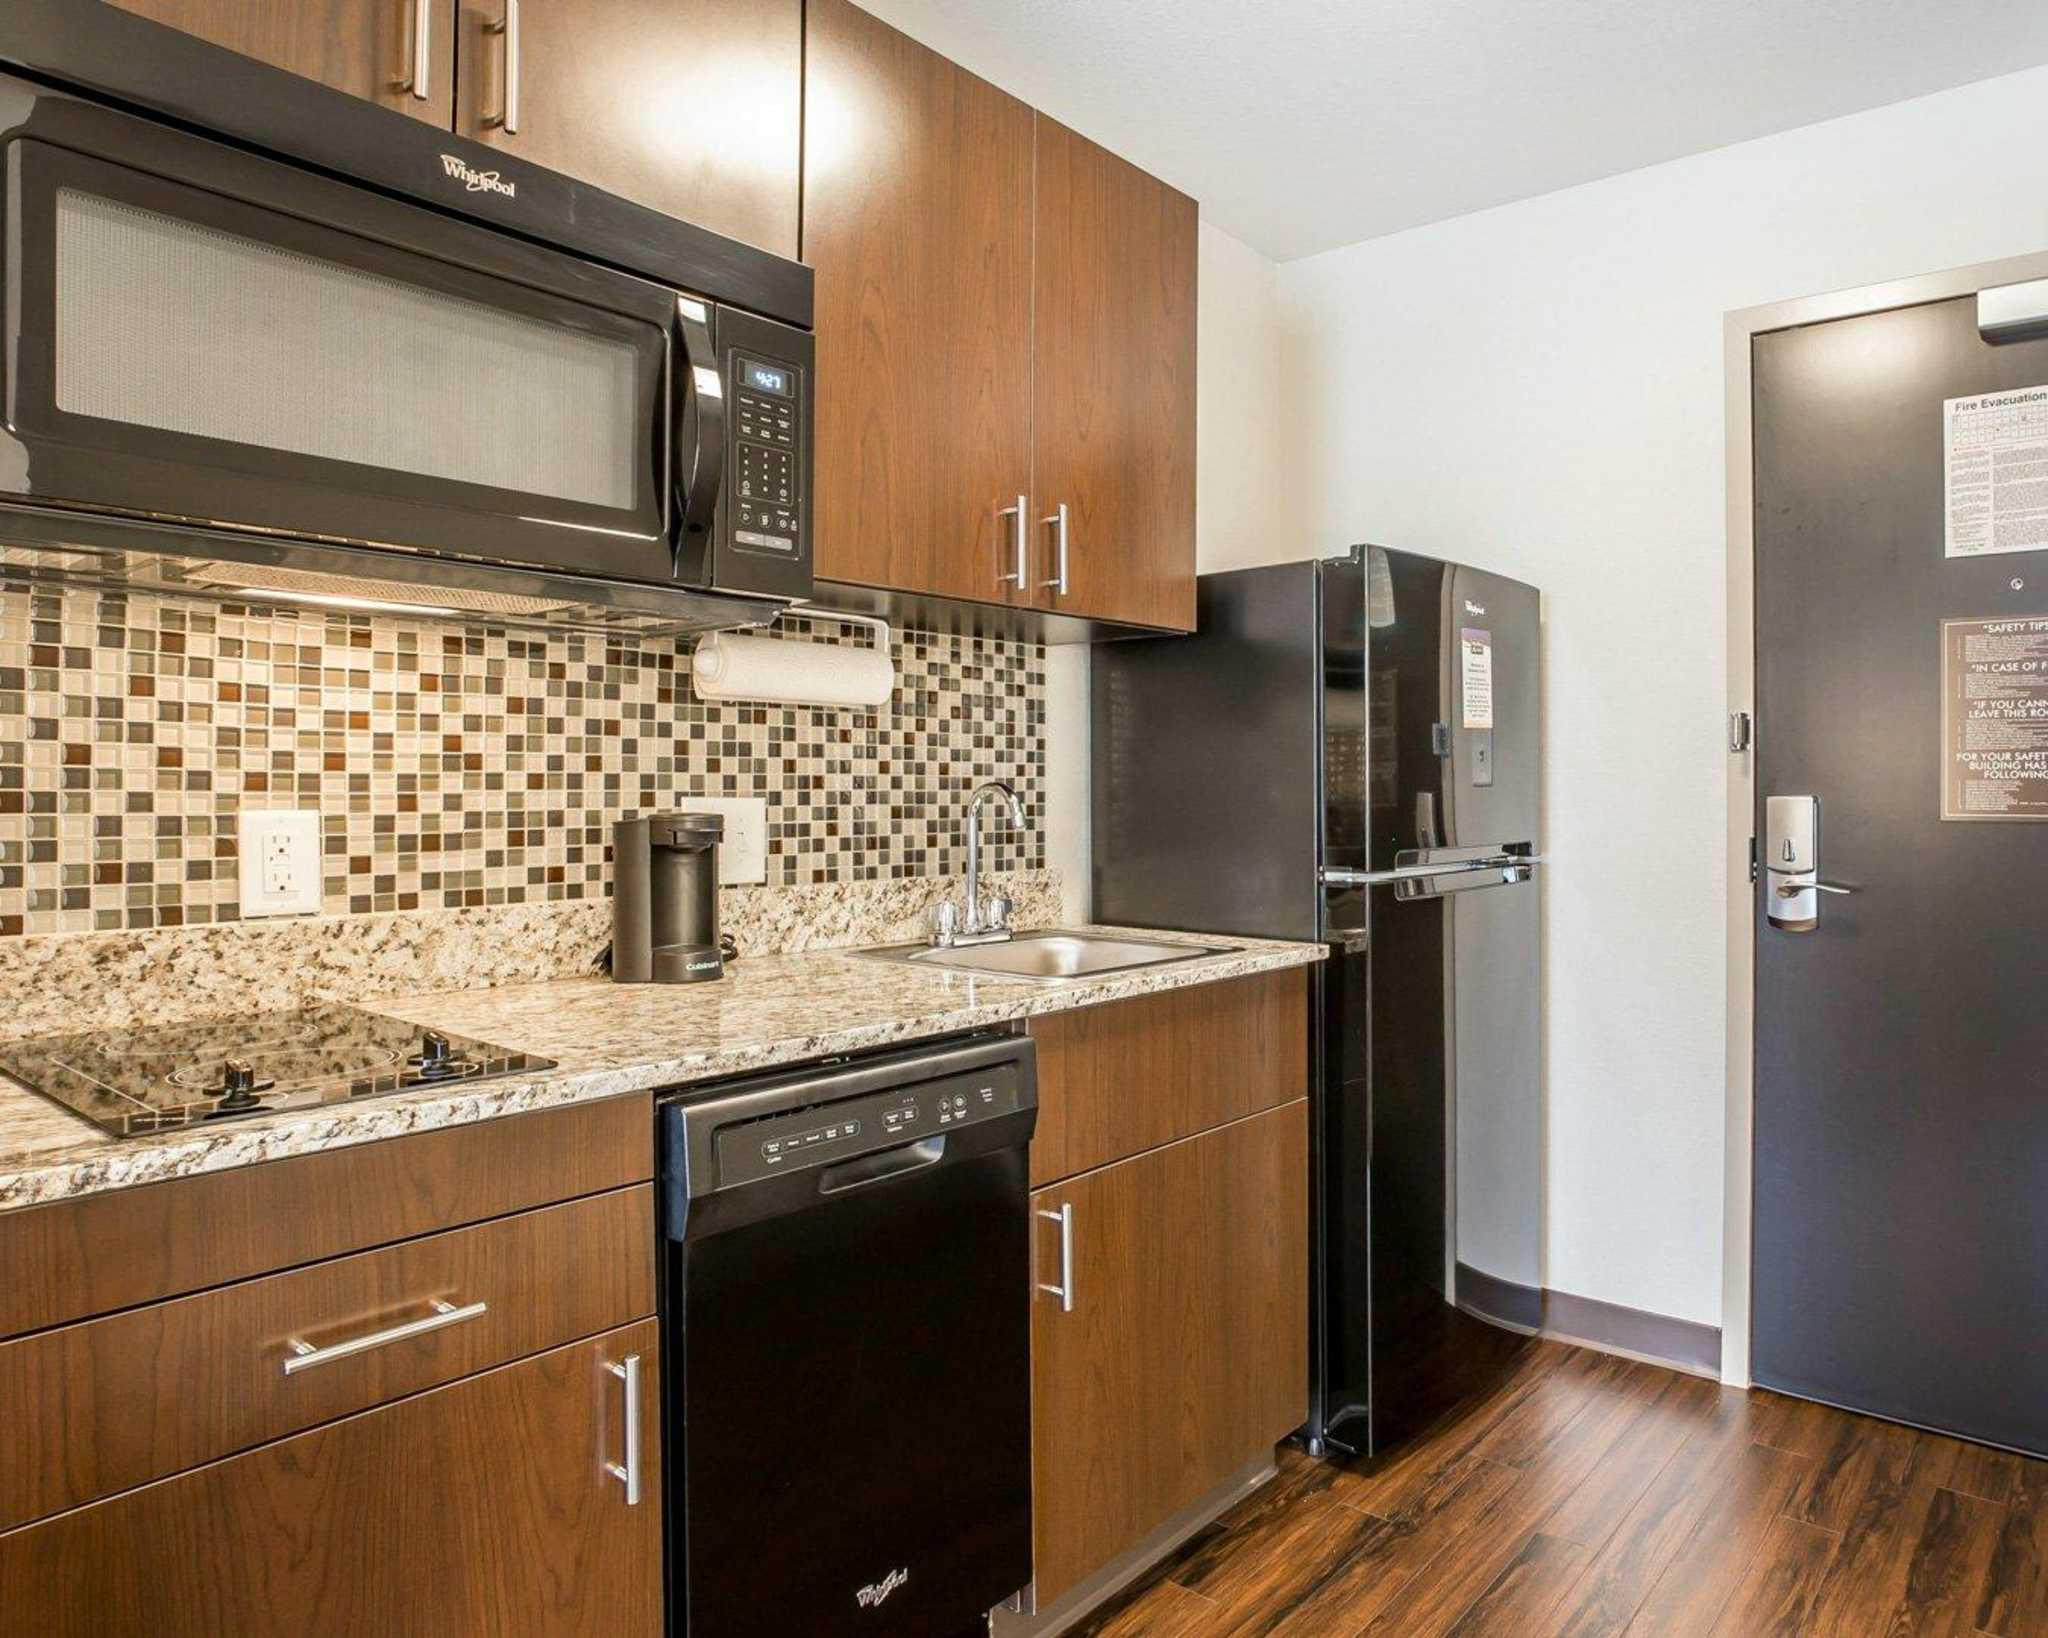 MainStay Suites Cartersville - Emerson Lake Point image 19